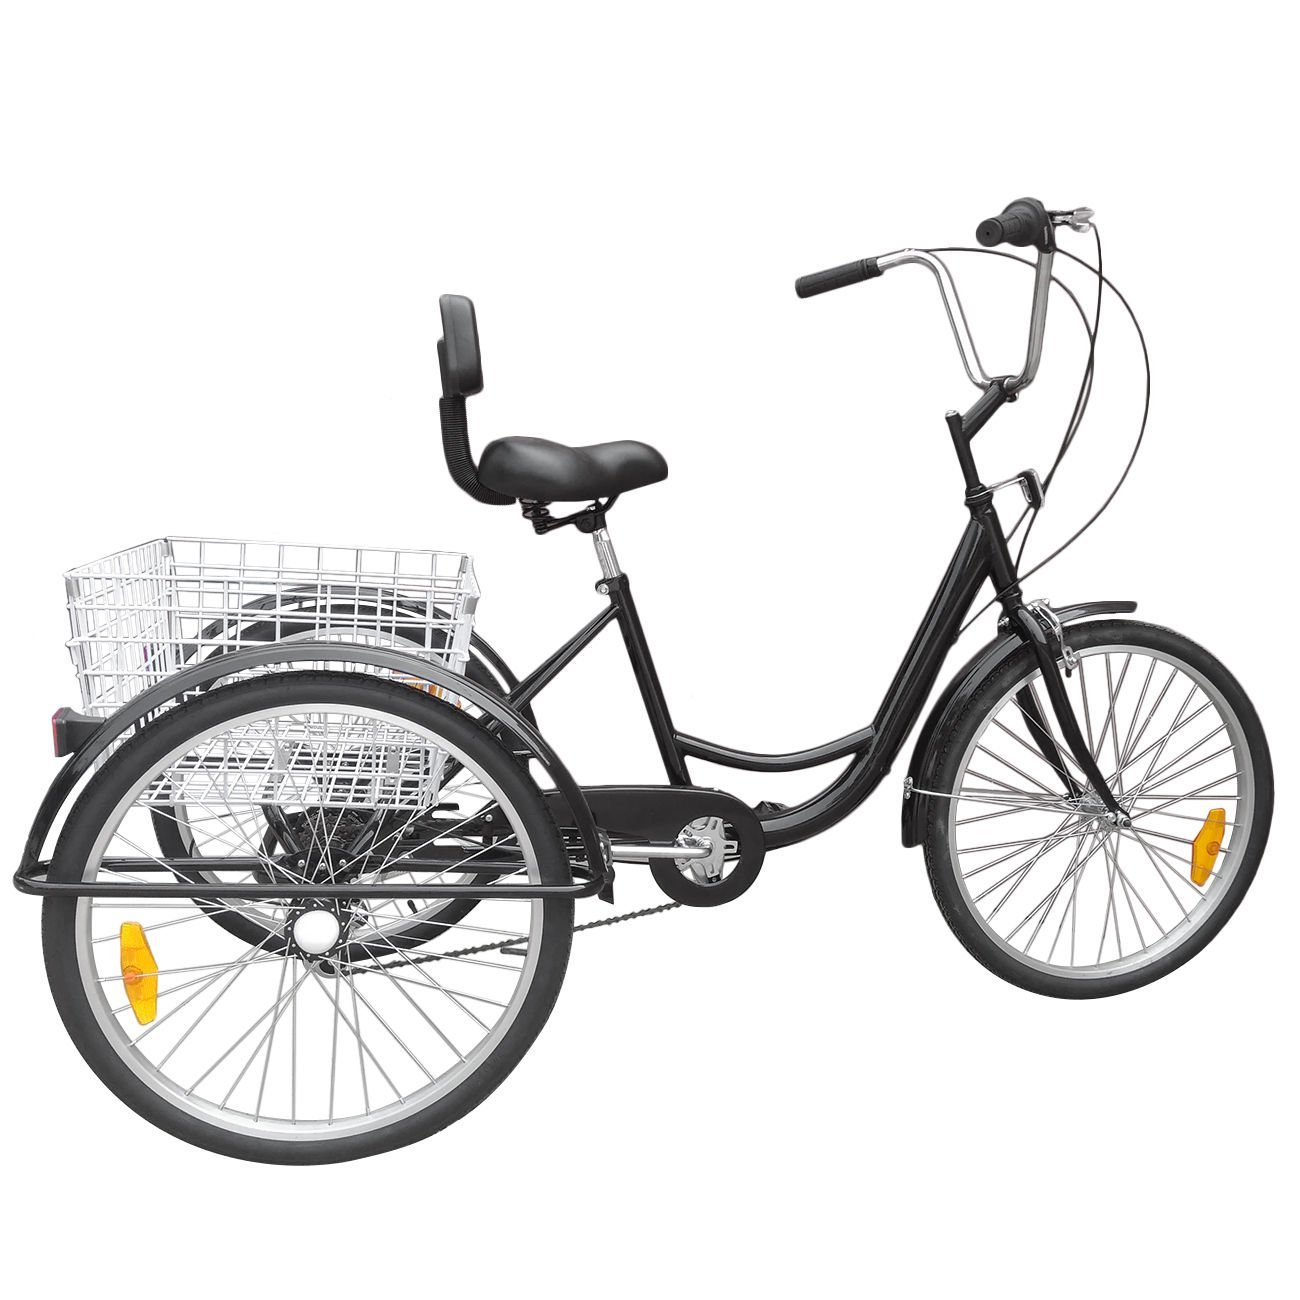 New 24'' 3-Wheel Unisex Adult Tricycle 6-Speed Bicycle W/ Basket -durable Fun safe black,popular